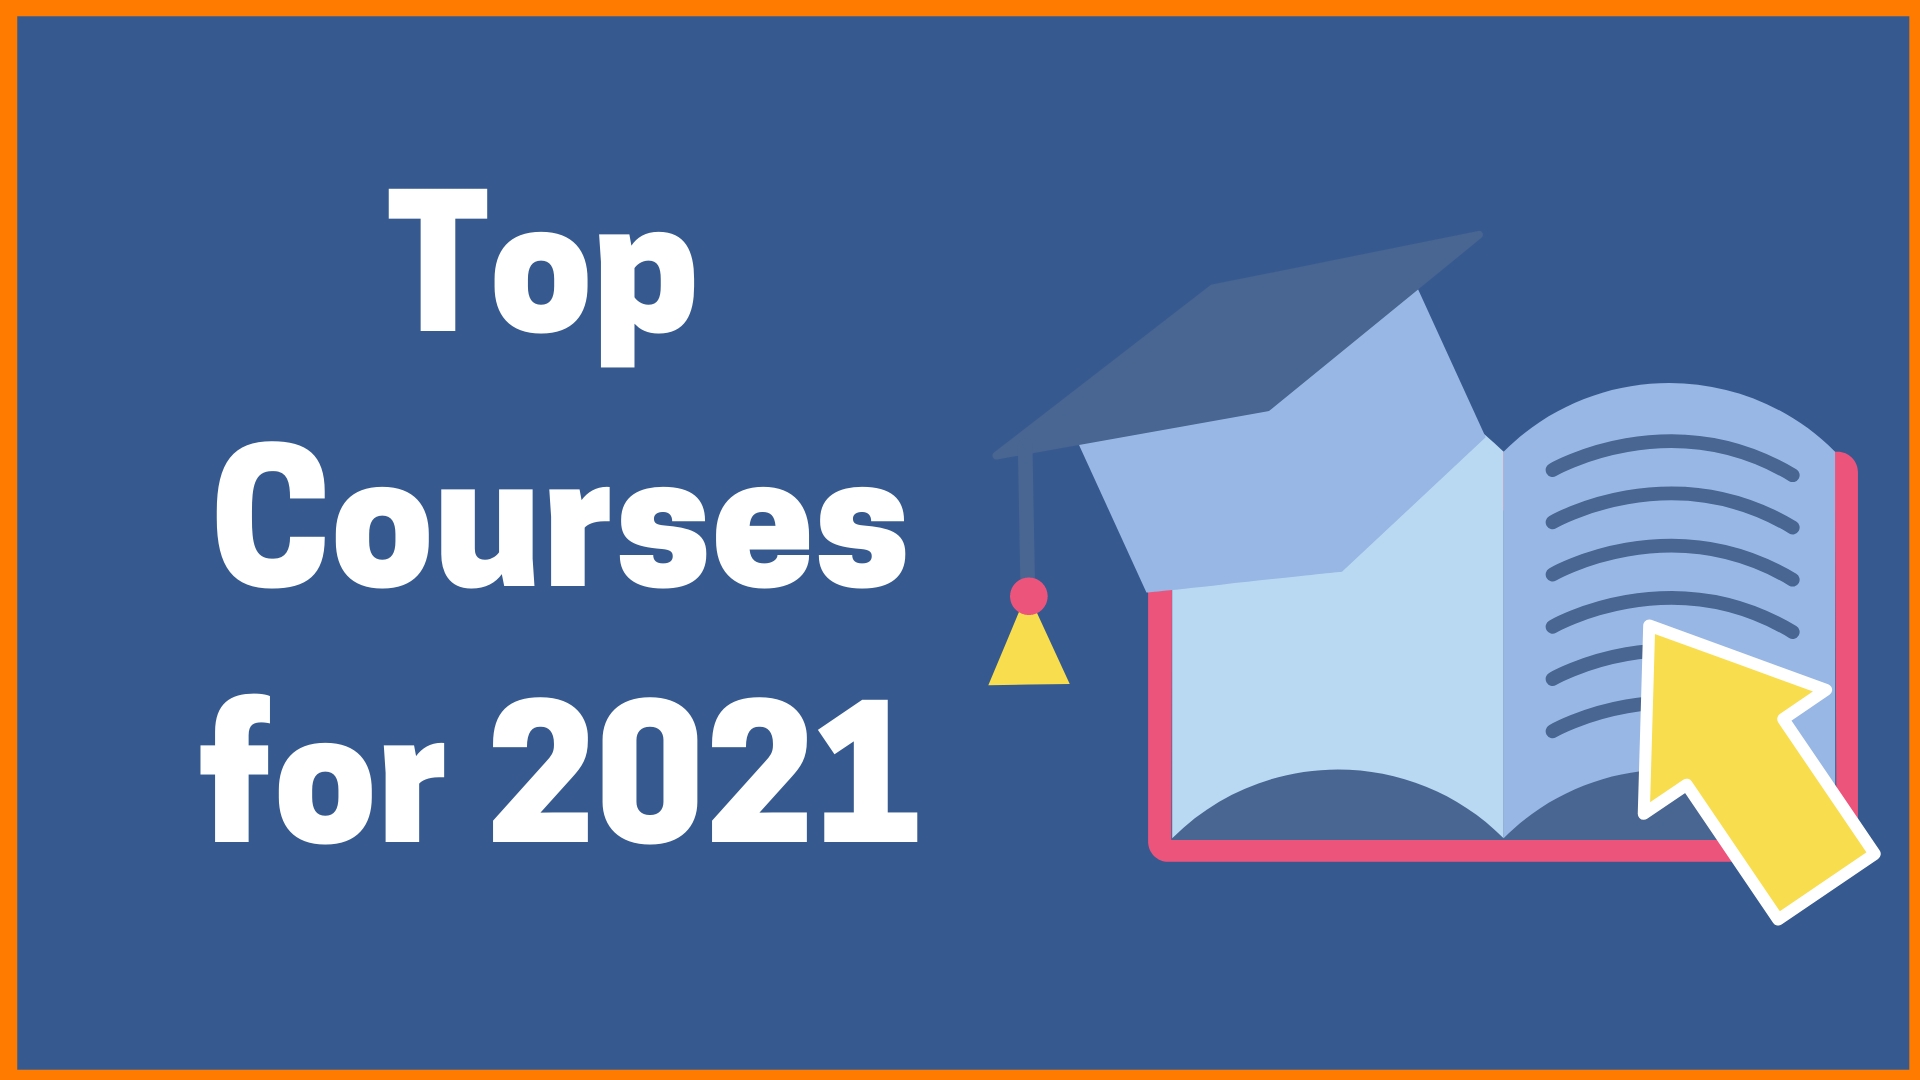 Top Courses for 2021